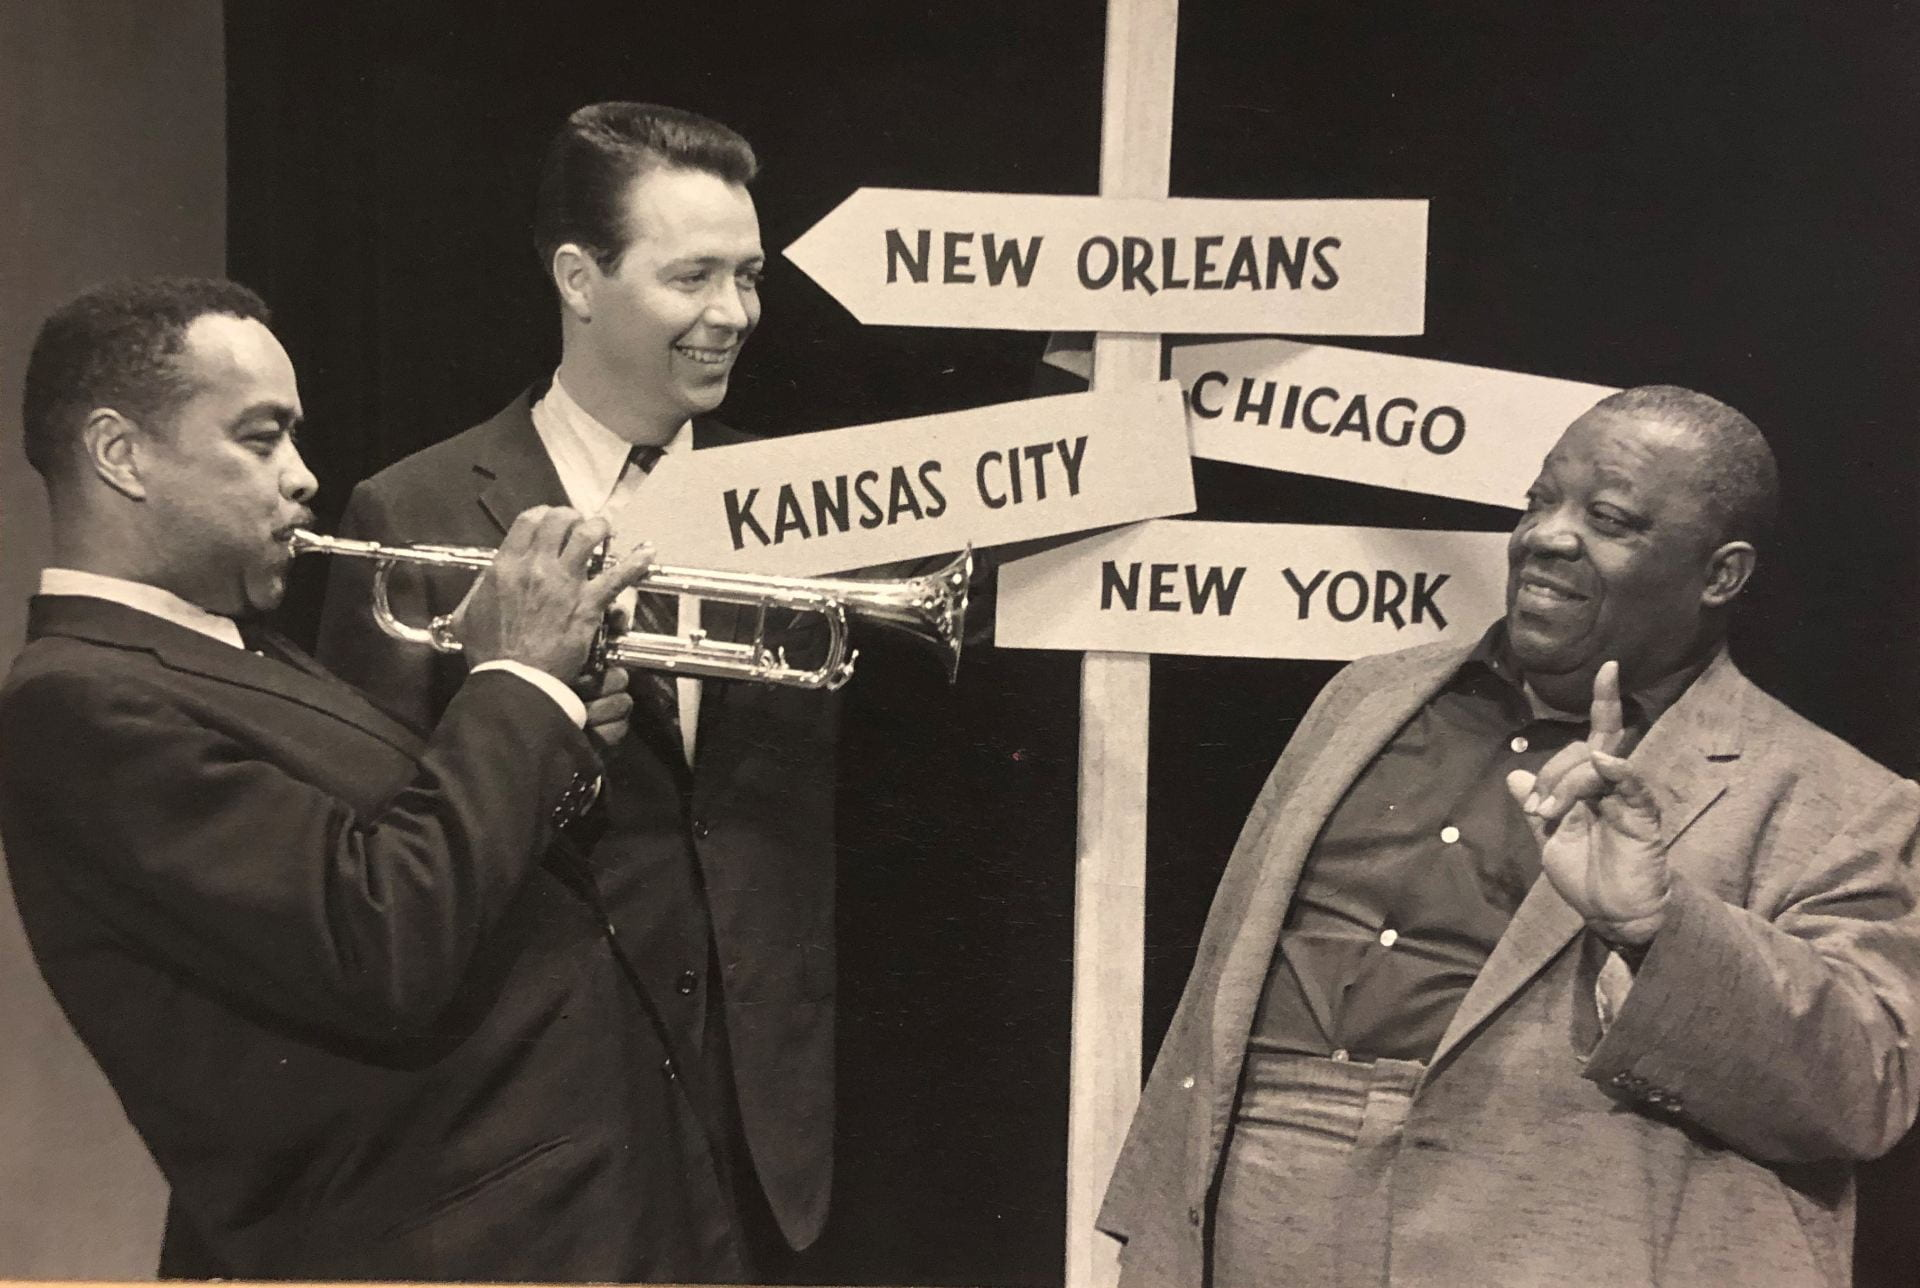 Black and white photograph from 1958 depicting radio announcer James Townsend Fitch standing with jazz musicians Clark Terry and Jimmy Ruching in front if a post with arrowed signs each labeled New Orleans, Kansas City, Chicago, and New York